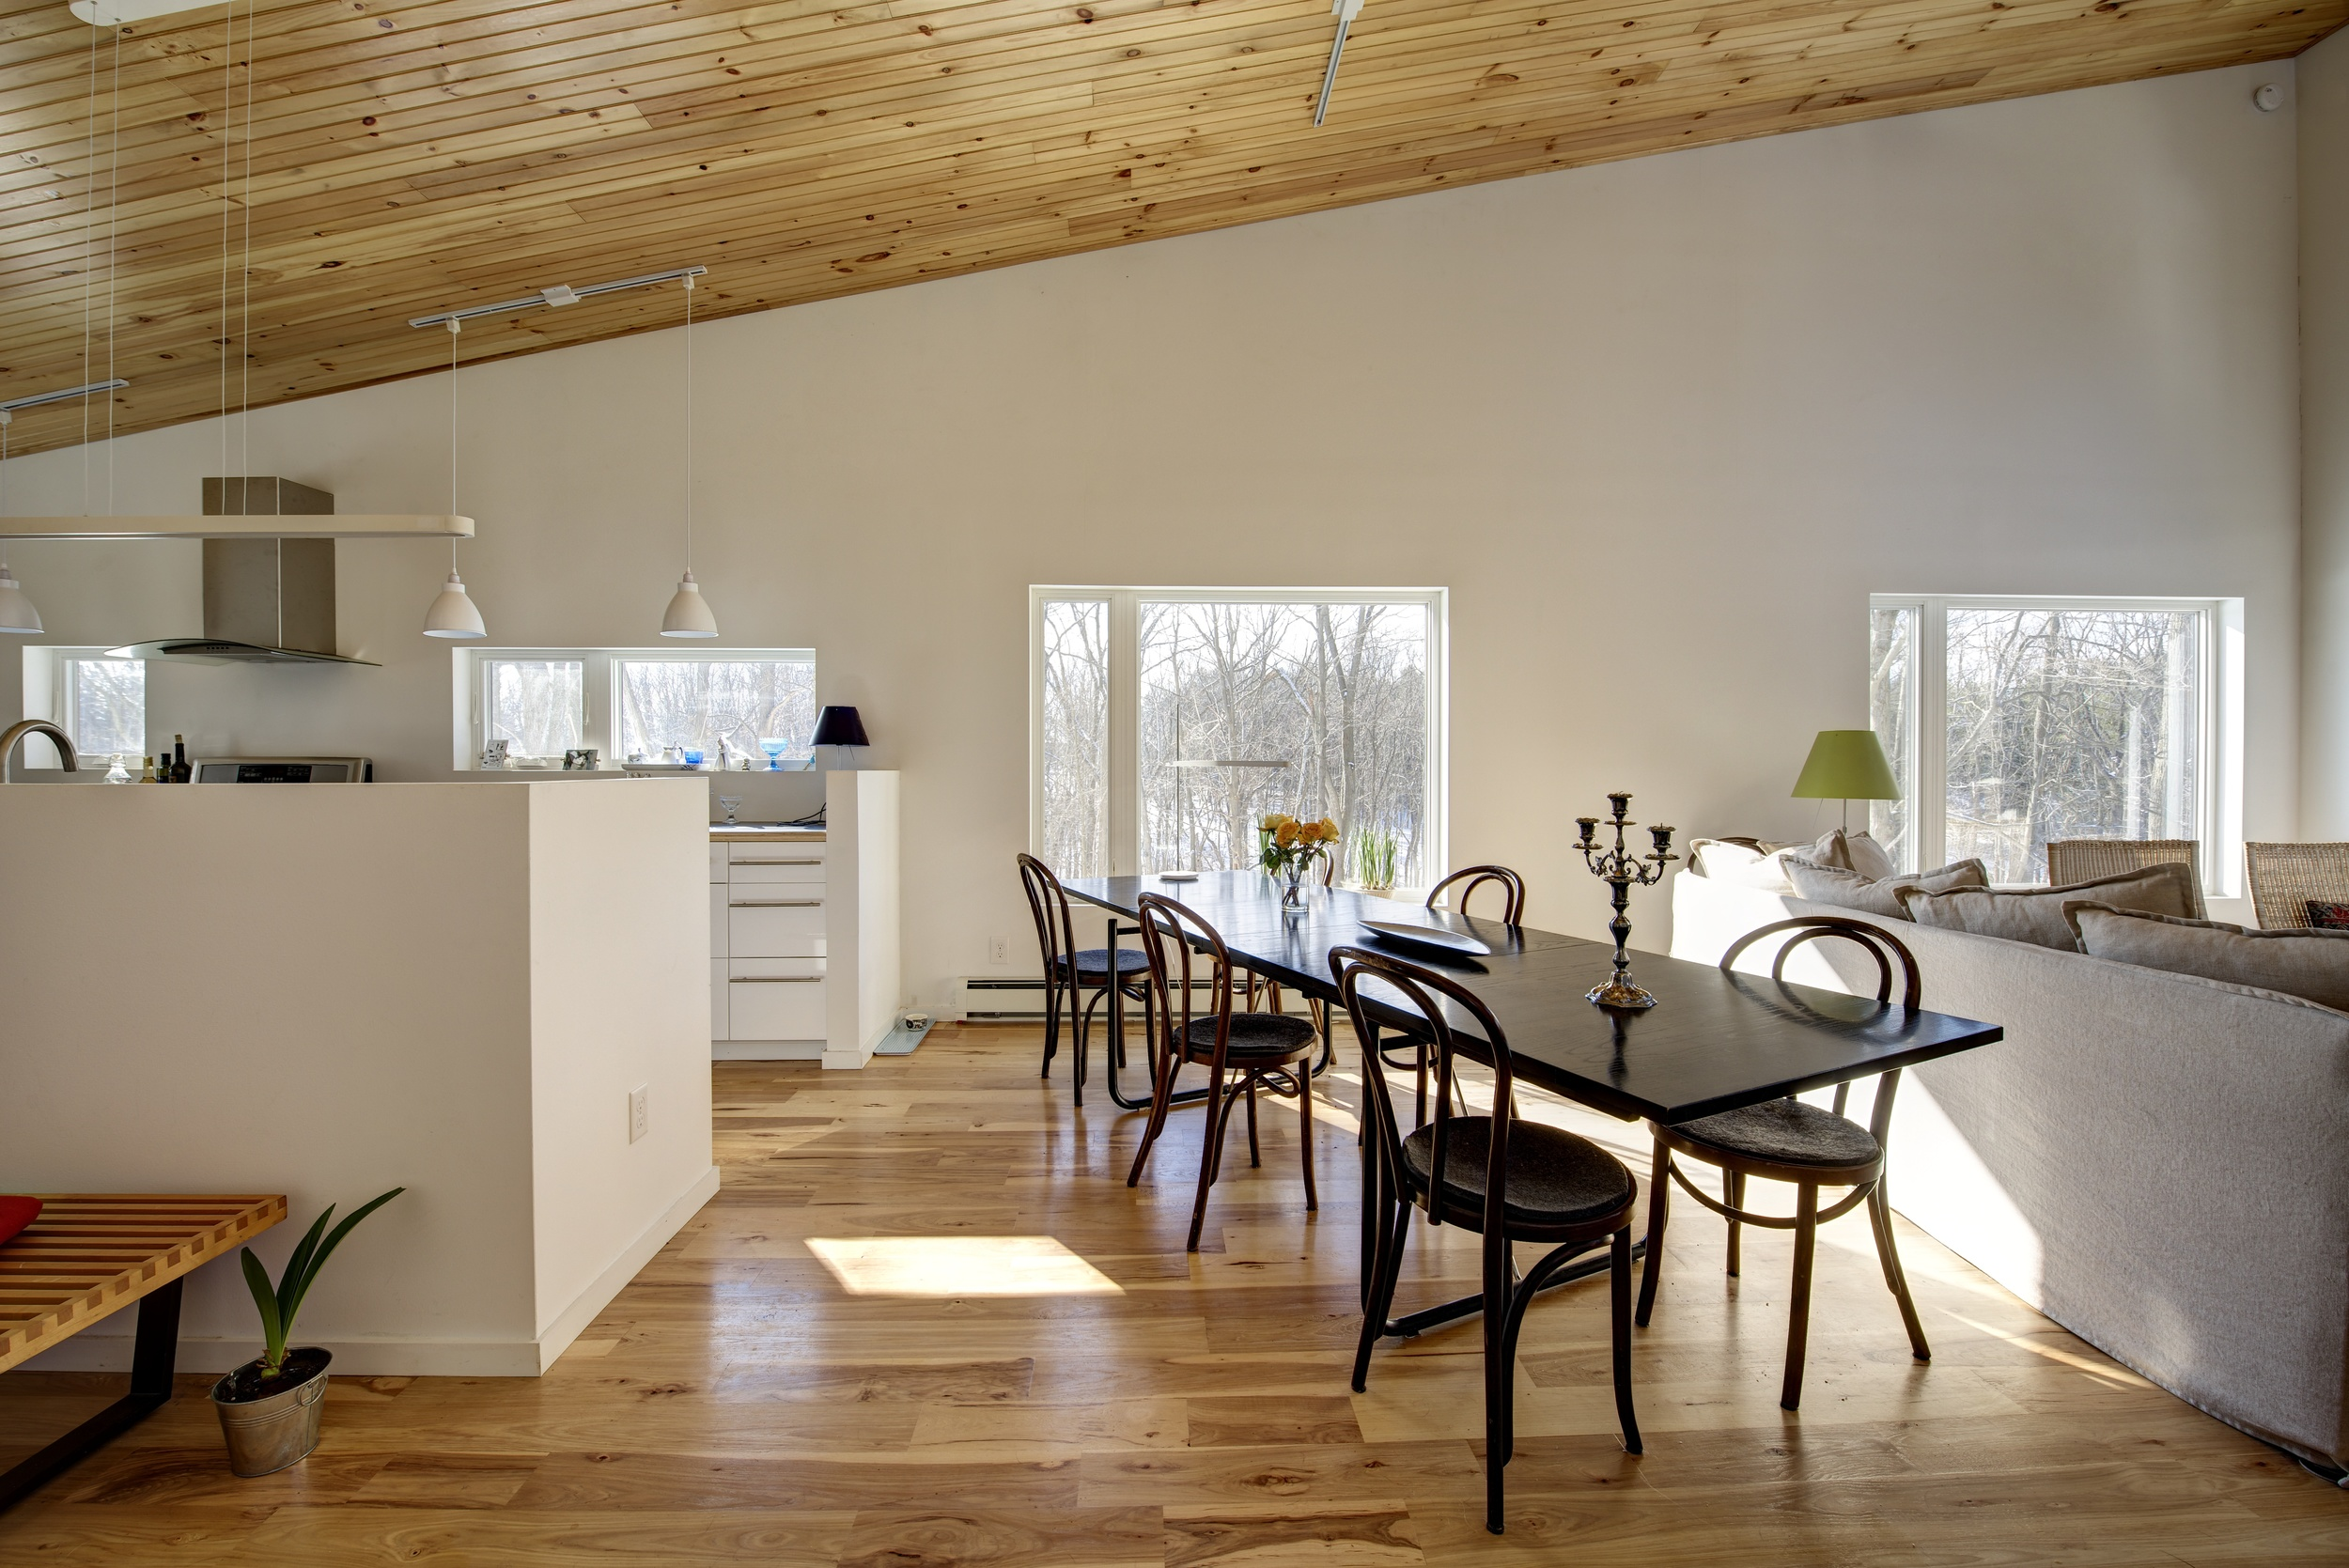 Carbone_IthacaHouse 36.jpg